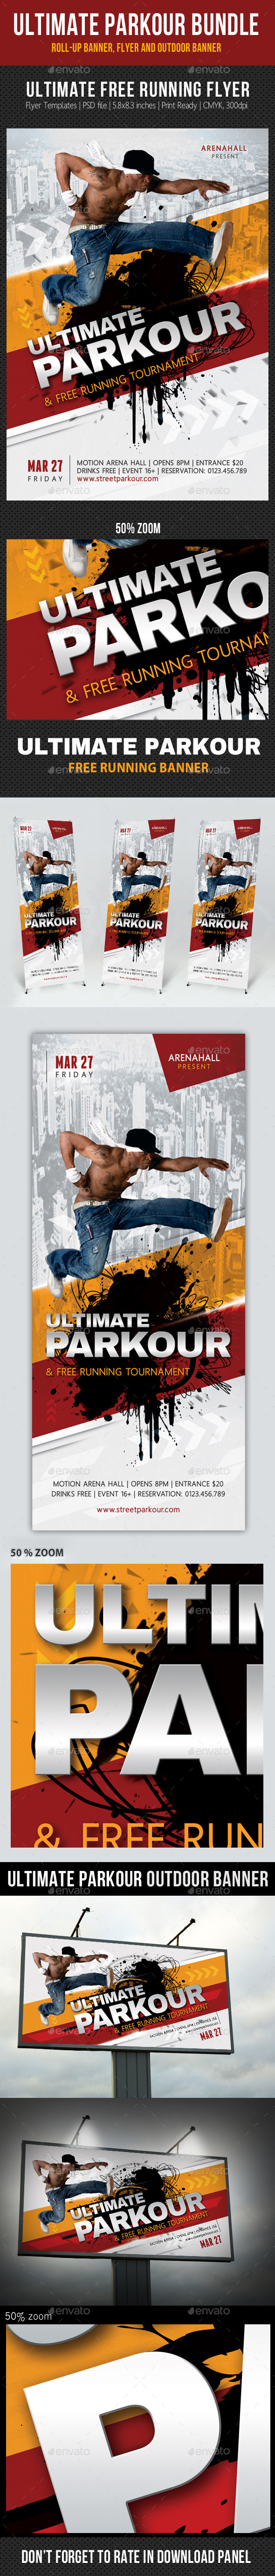 GraphicRiver 3 in 1 Ultimate Parkour Banners and Flyer Bundle 11011404